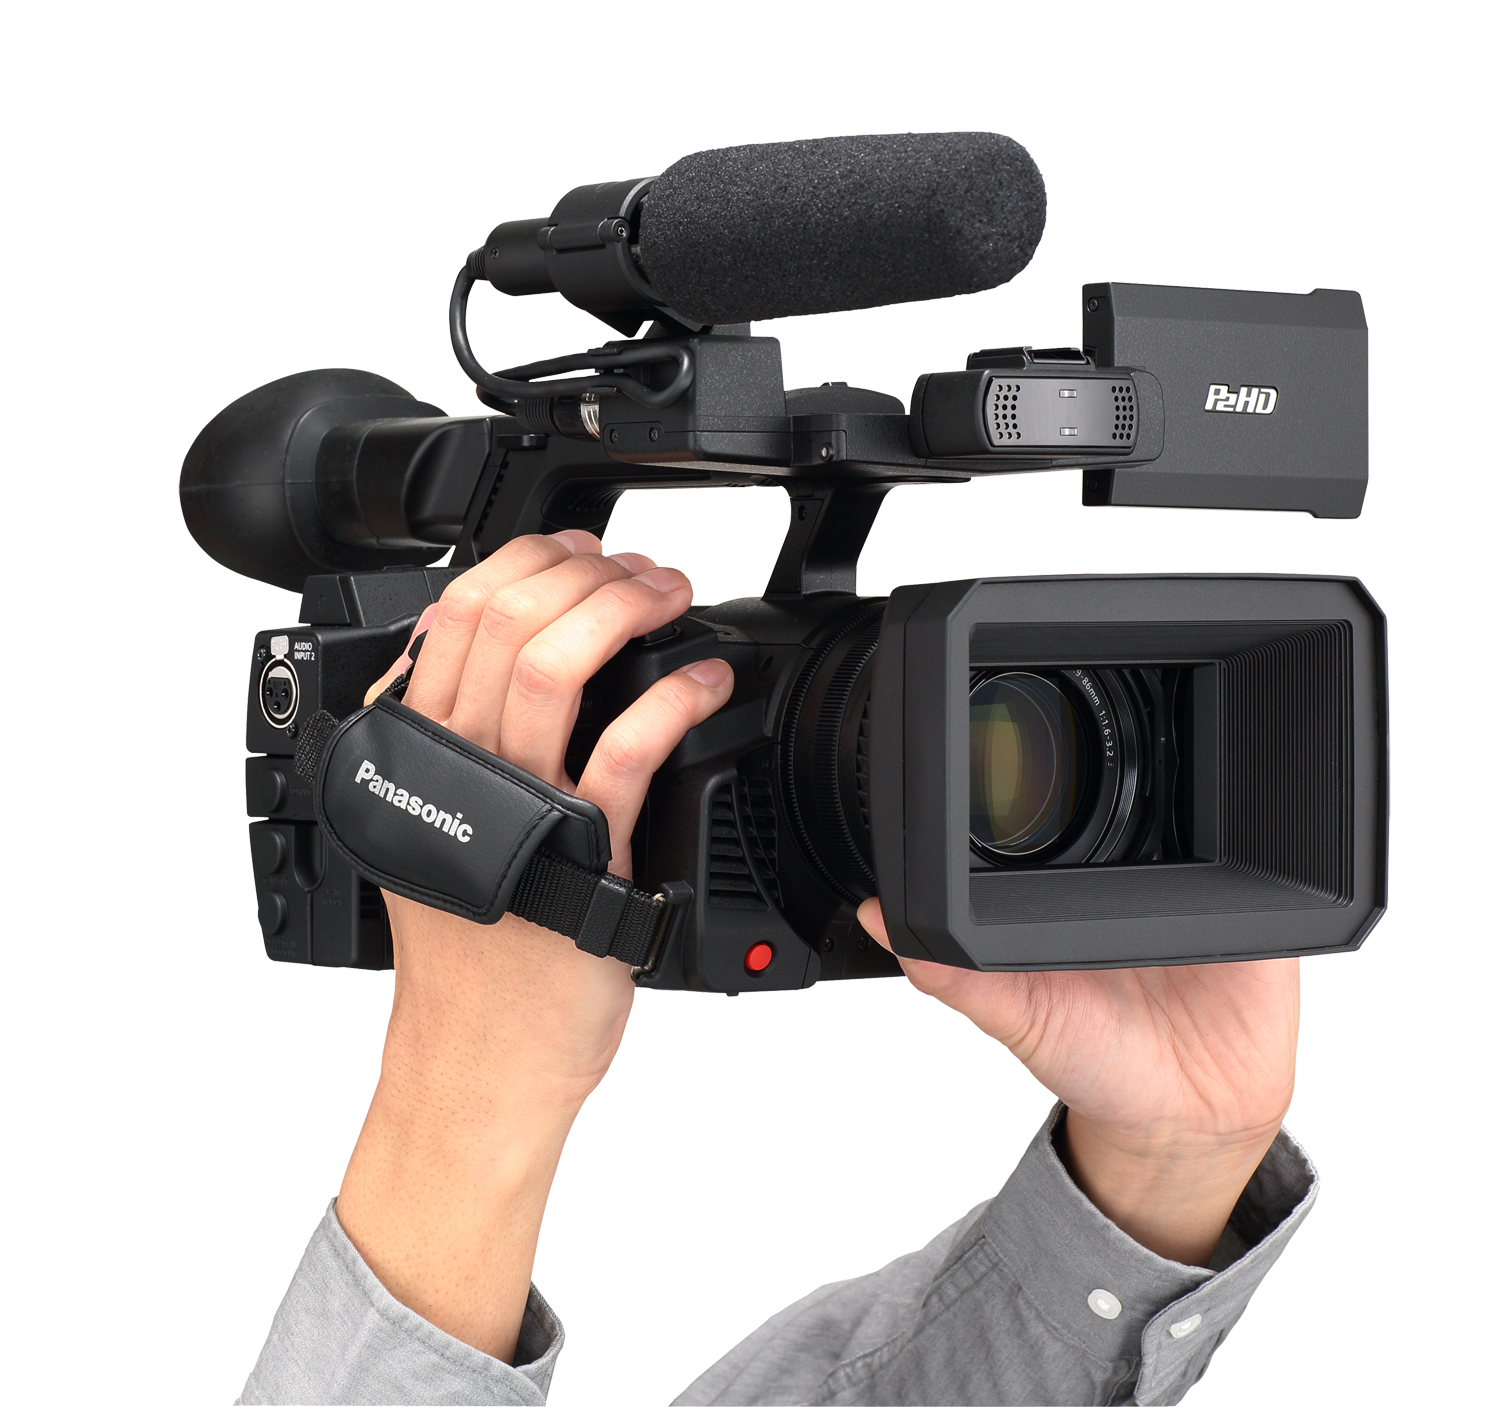 News camera png. P cast workflow professional